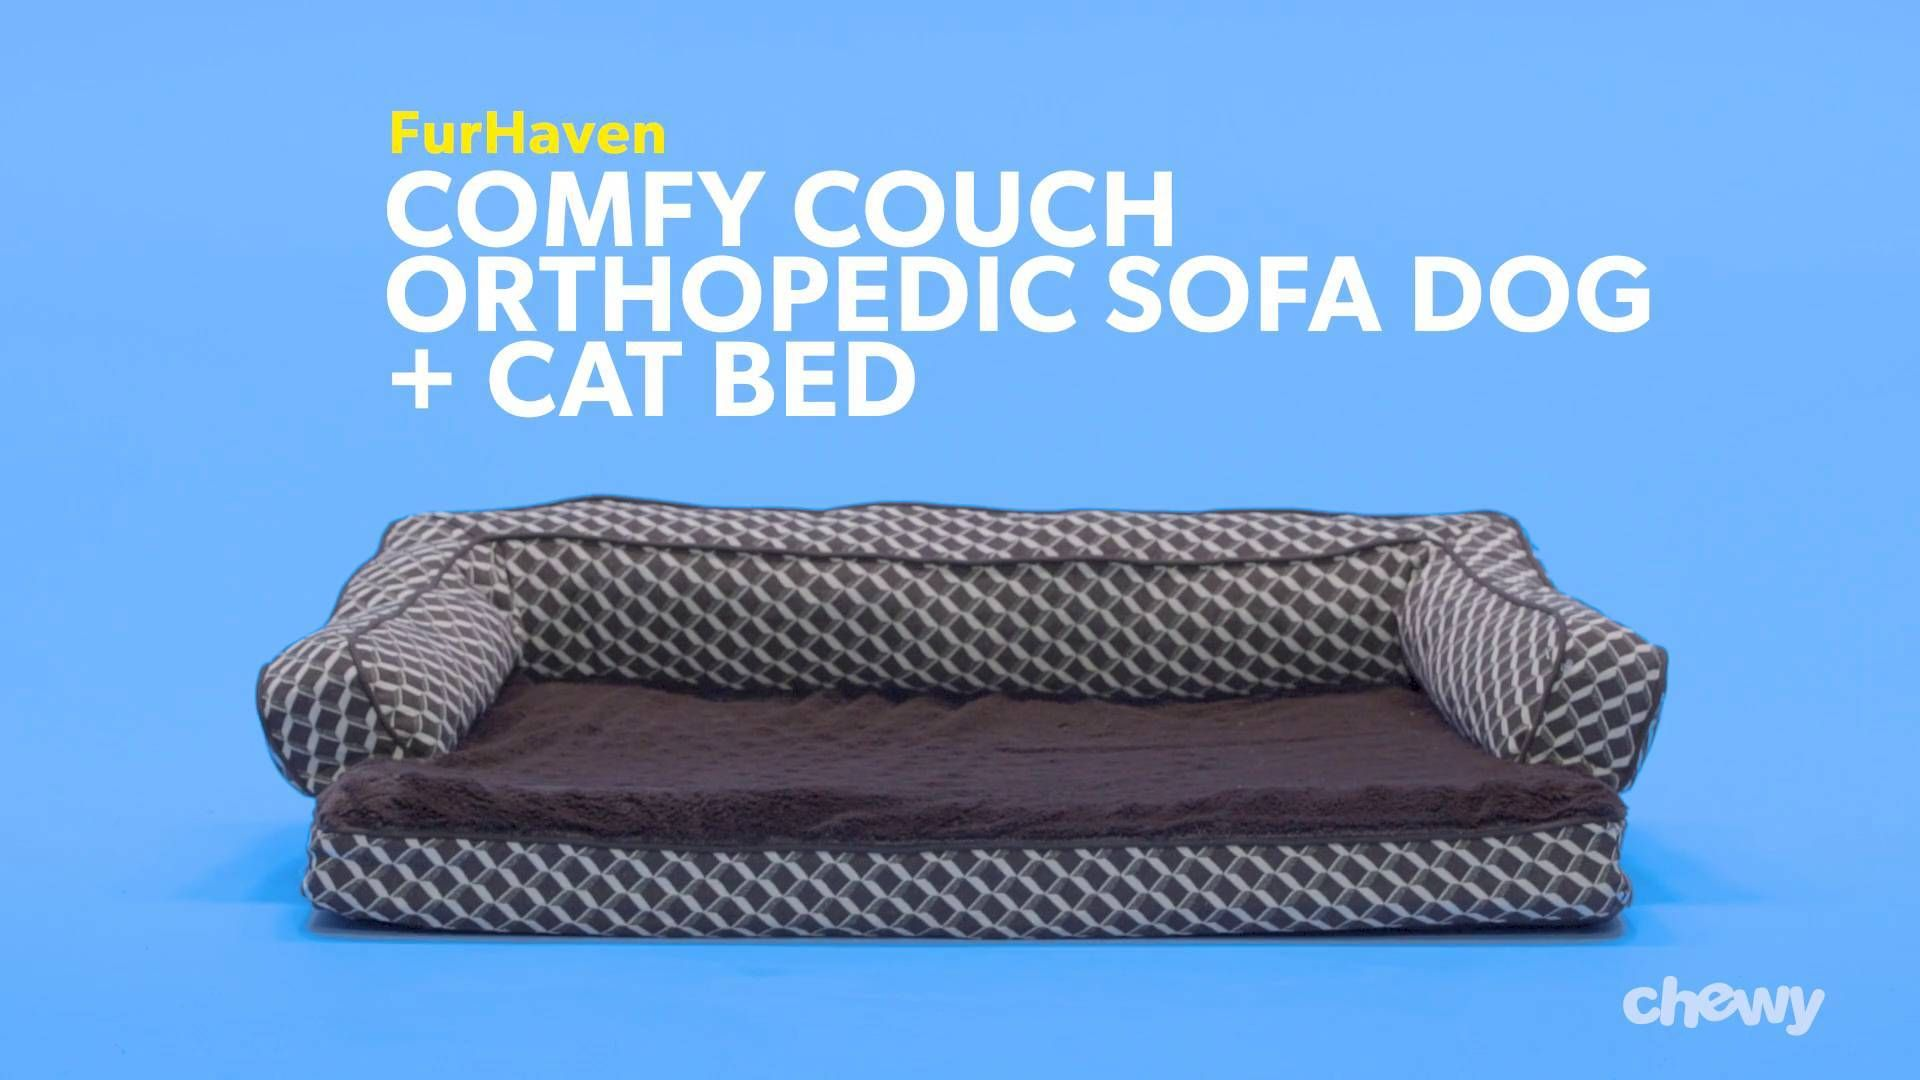 FurHaven Comfy Couch Orthopedic Sofa Dog & Cat Bed